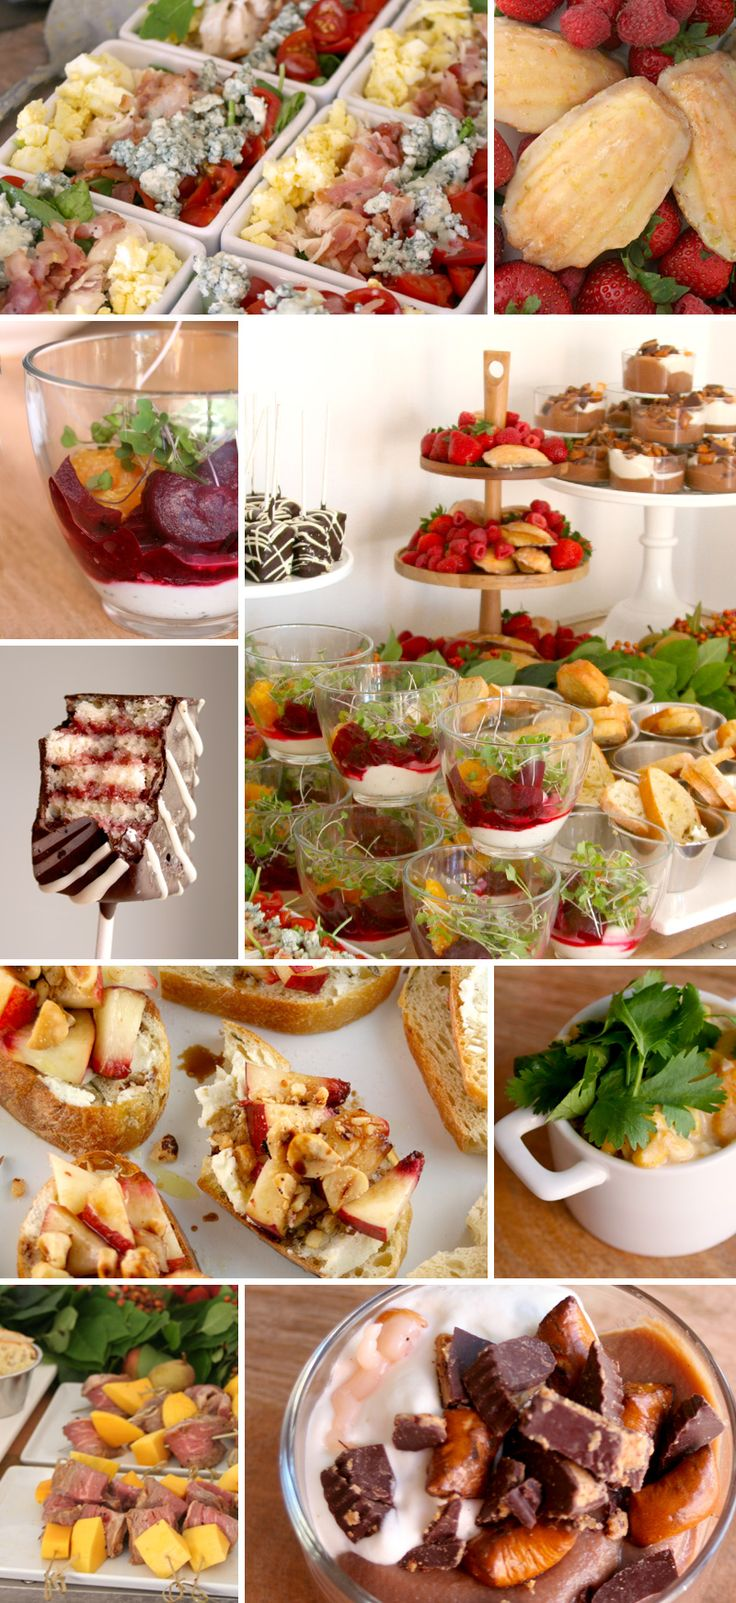 143 best mini salads salad bites images on pinterest for Best brunch menu